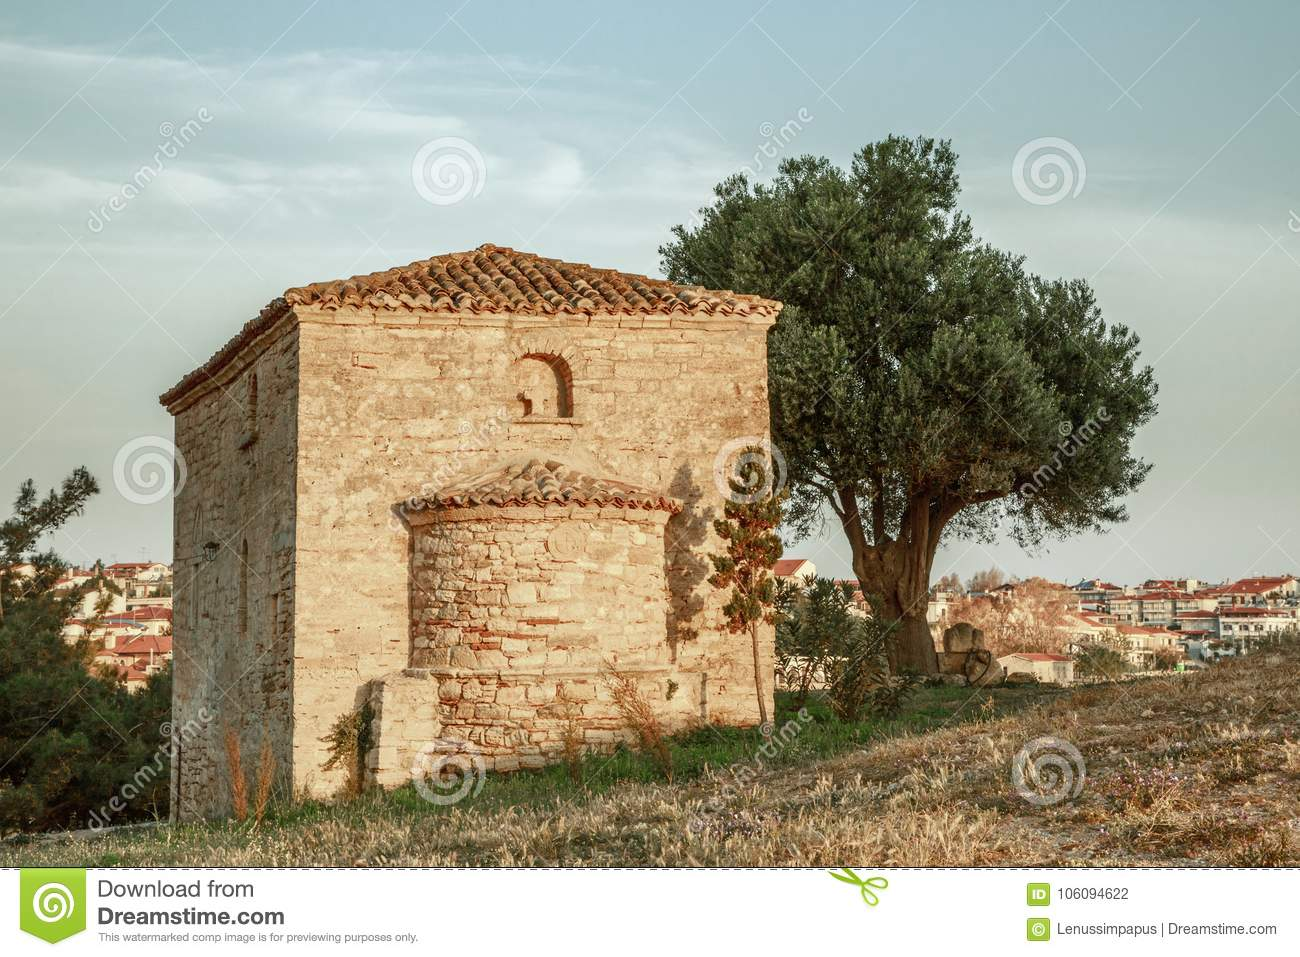 a lonely ancient chapel under a tree on the hill of the sea coast in a coastal Greek village at dawn of the day